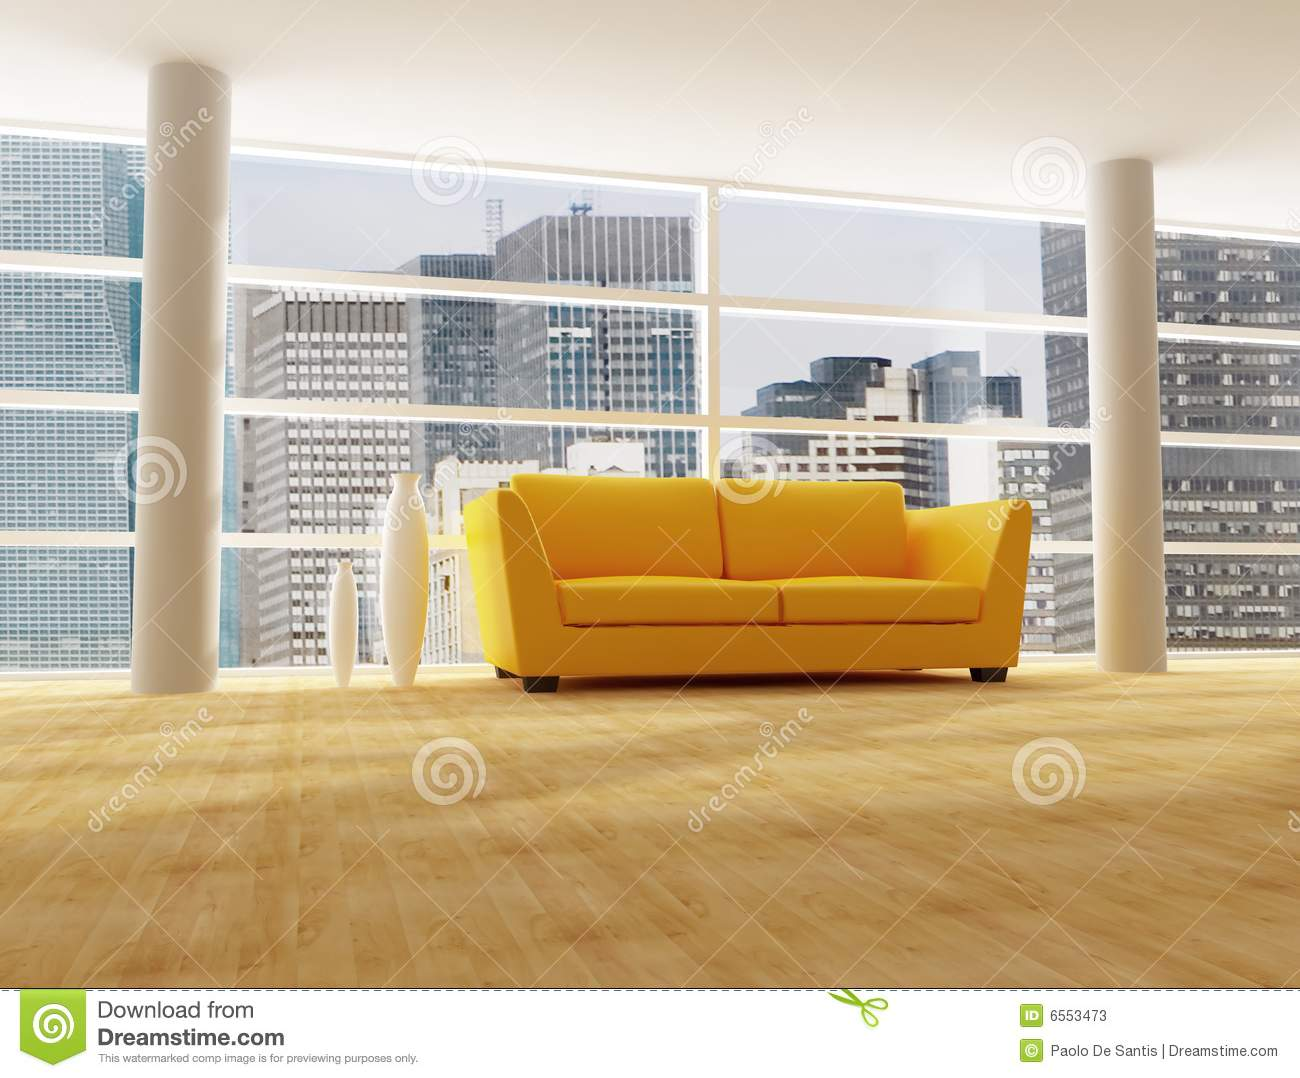 Int rieur d 39 une maison moderne de ville photos stock image 6553473 for Interieur d une maison